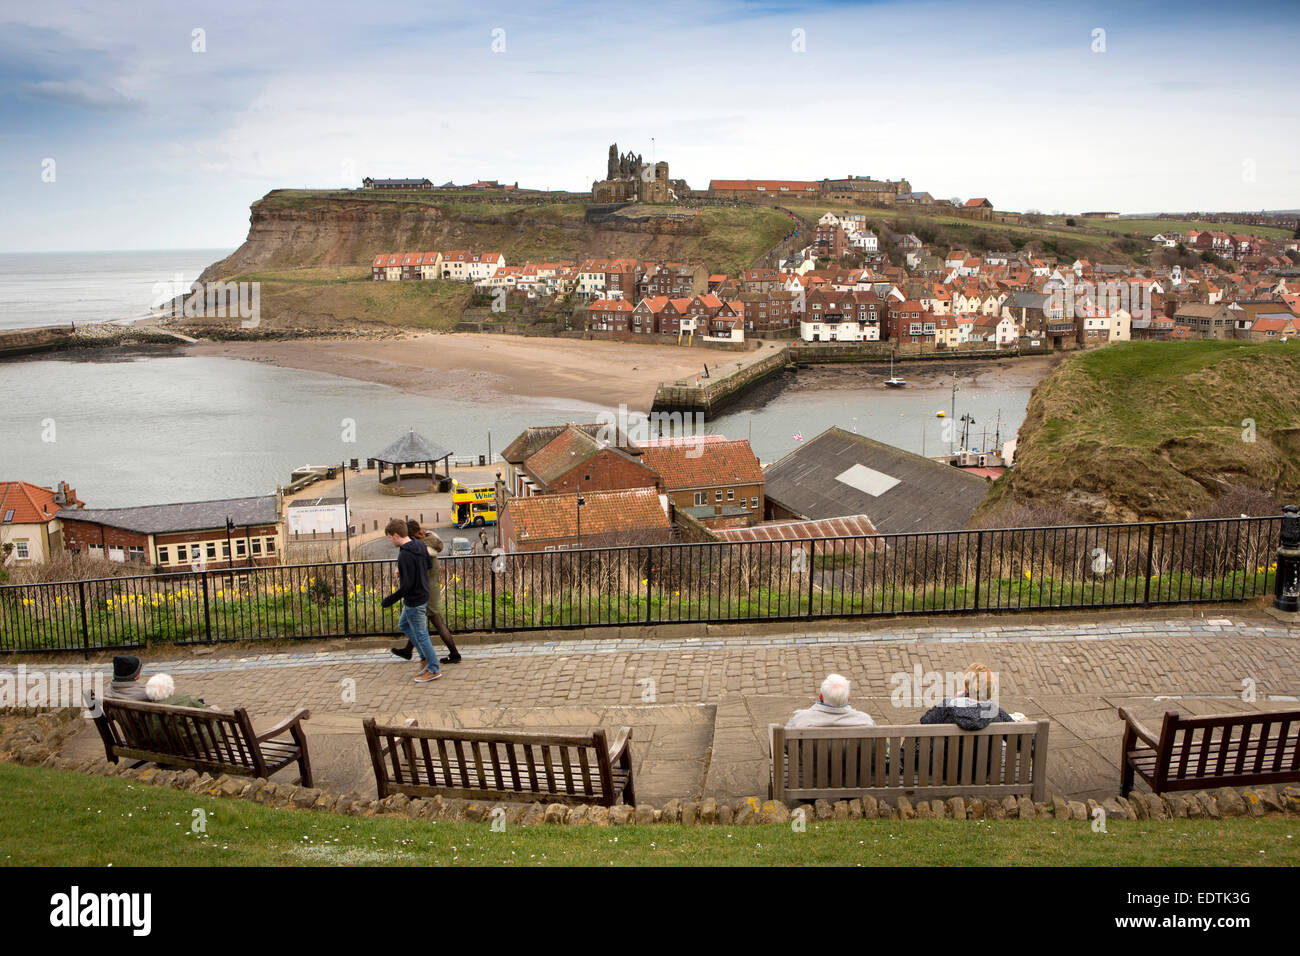 Yorkshire Terrace: UK, England, Yorkshire, Whitby, East Terrace, Benches